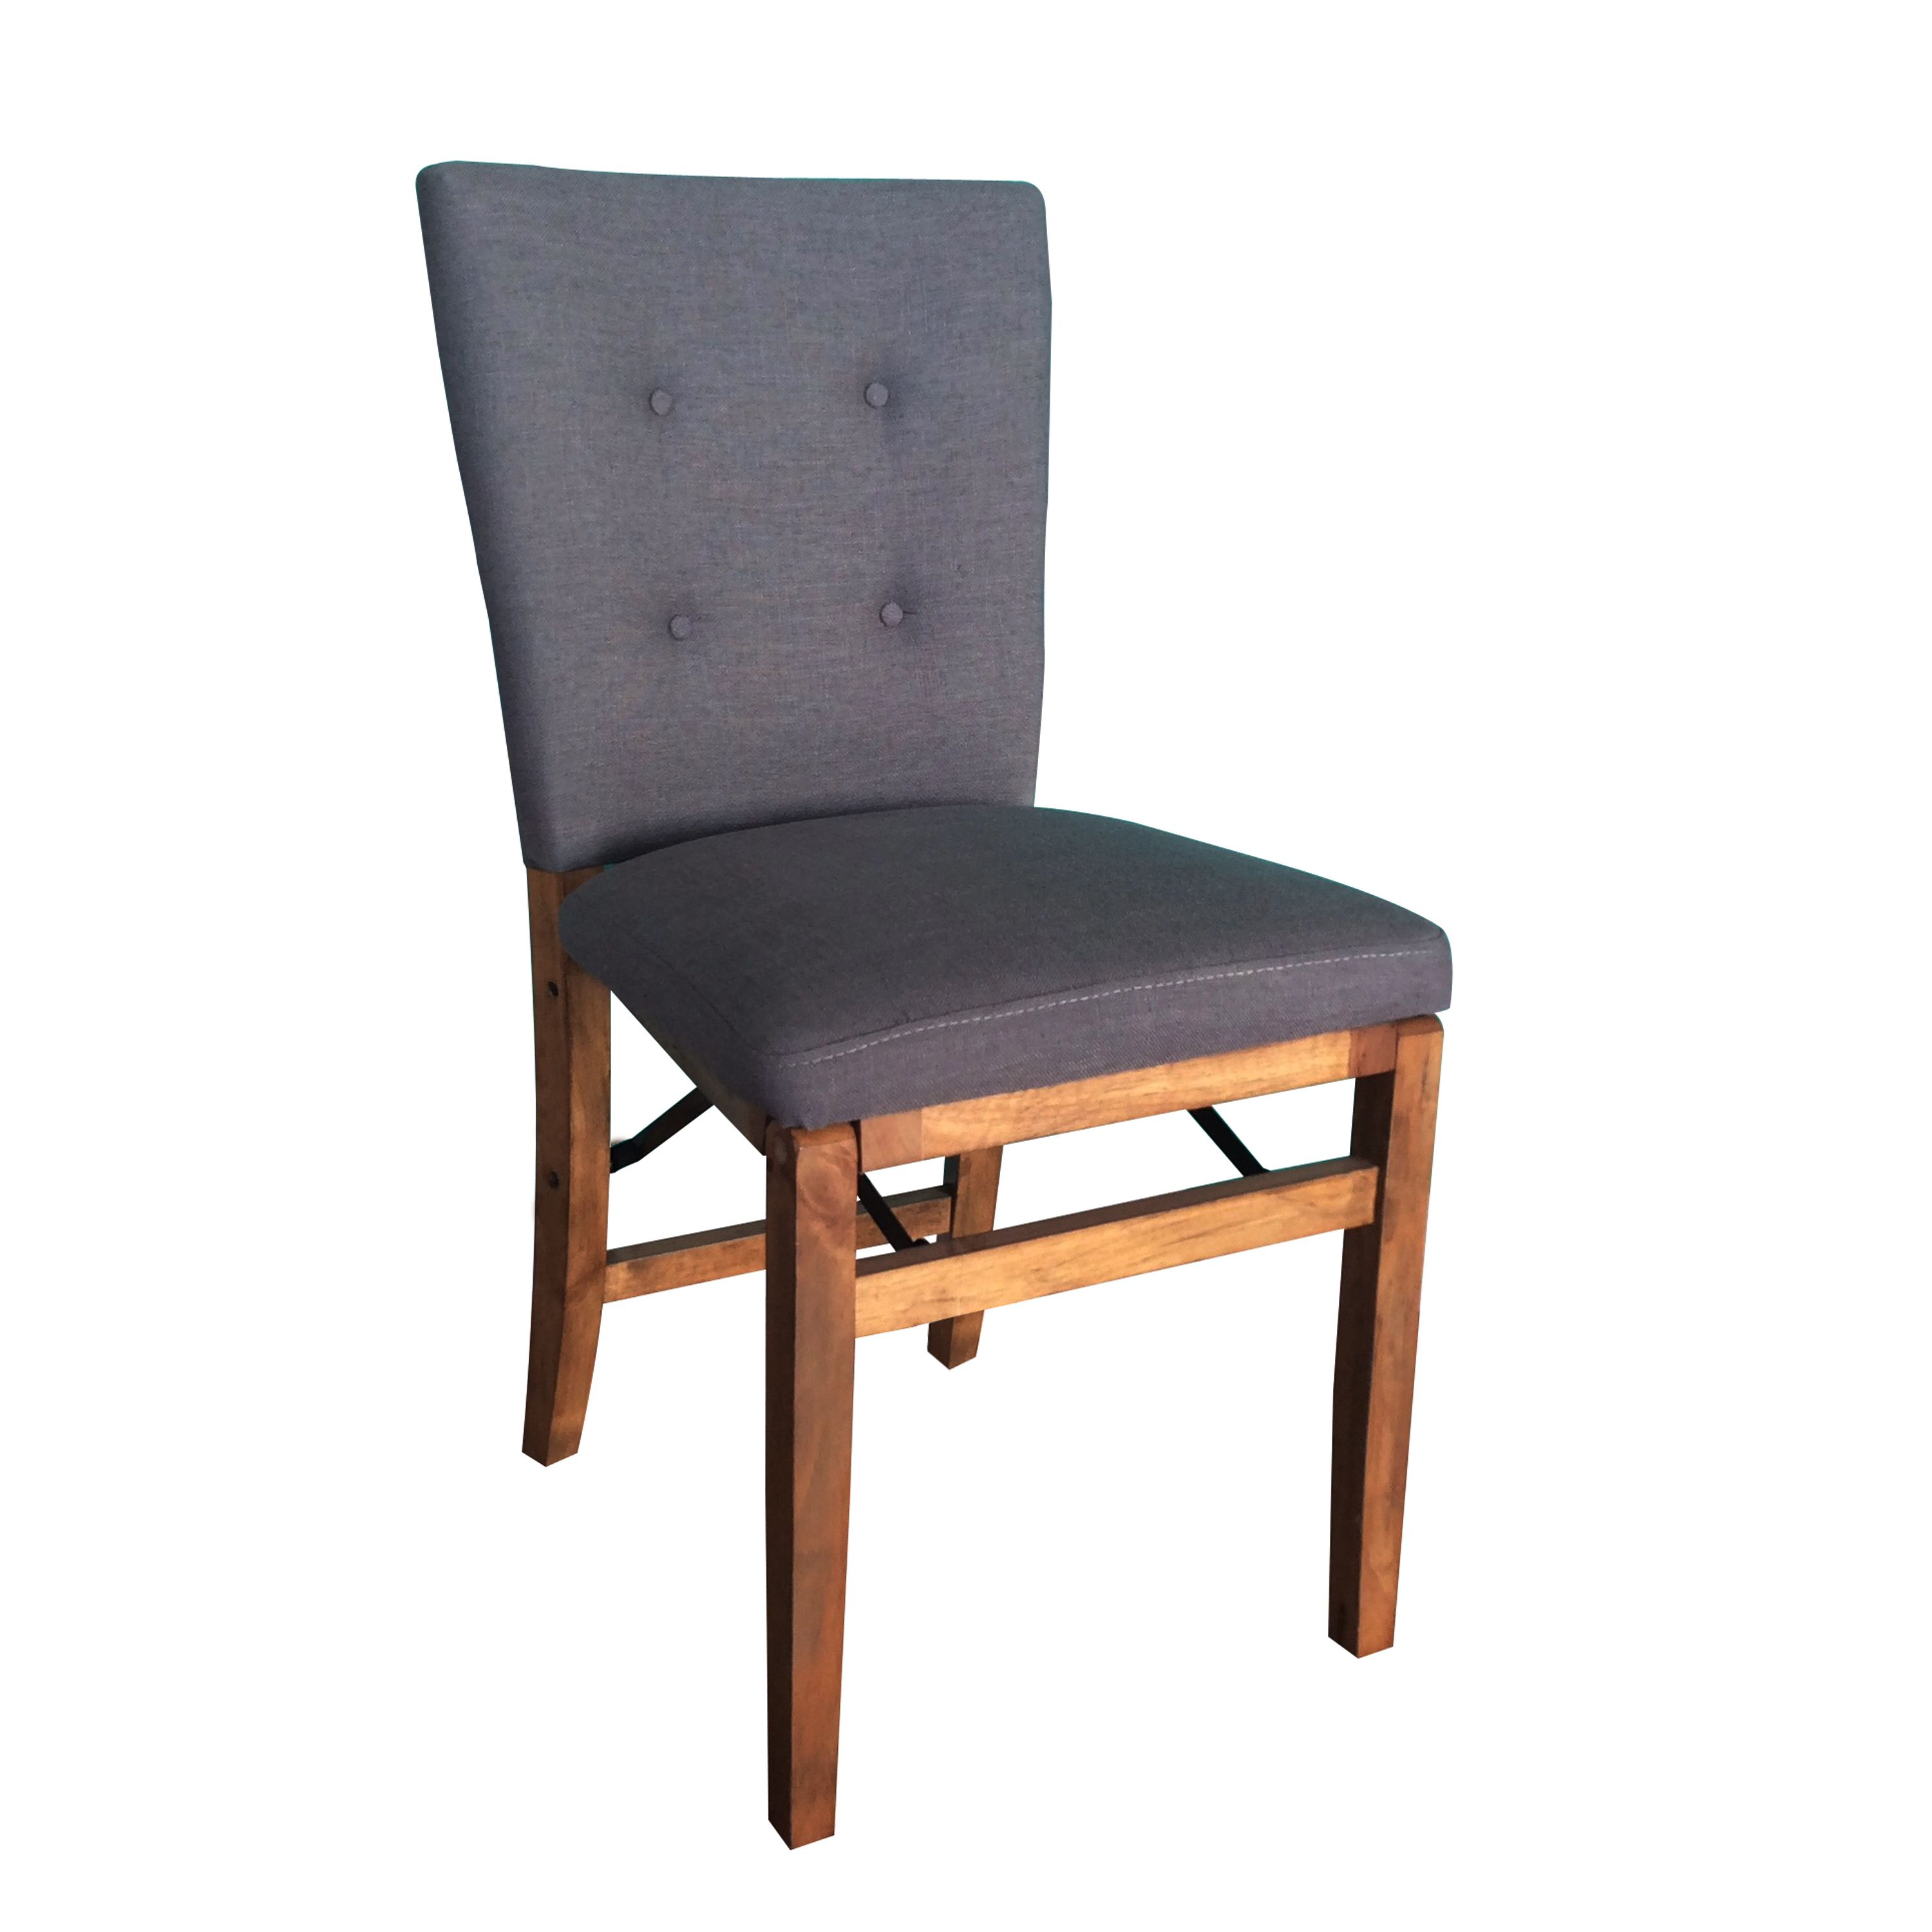 Upholstered Wooden Folding Chairs homepop solid wood grey folding chair | extra seating, grey fabric